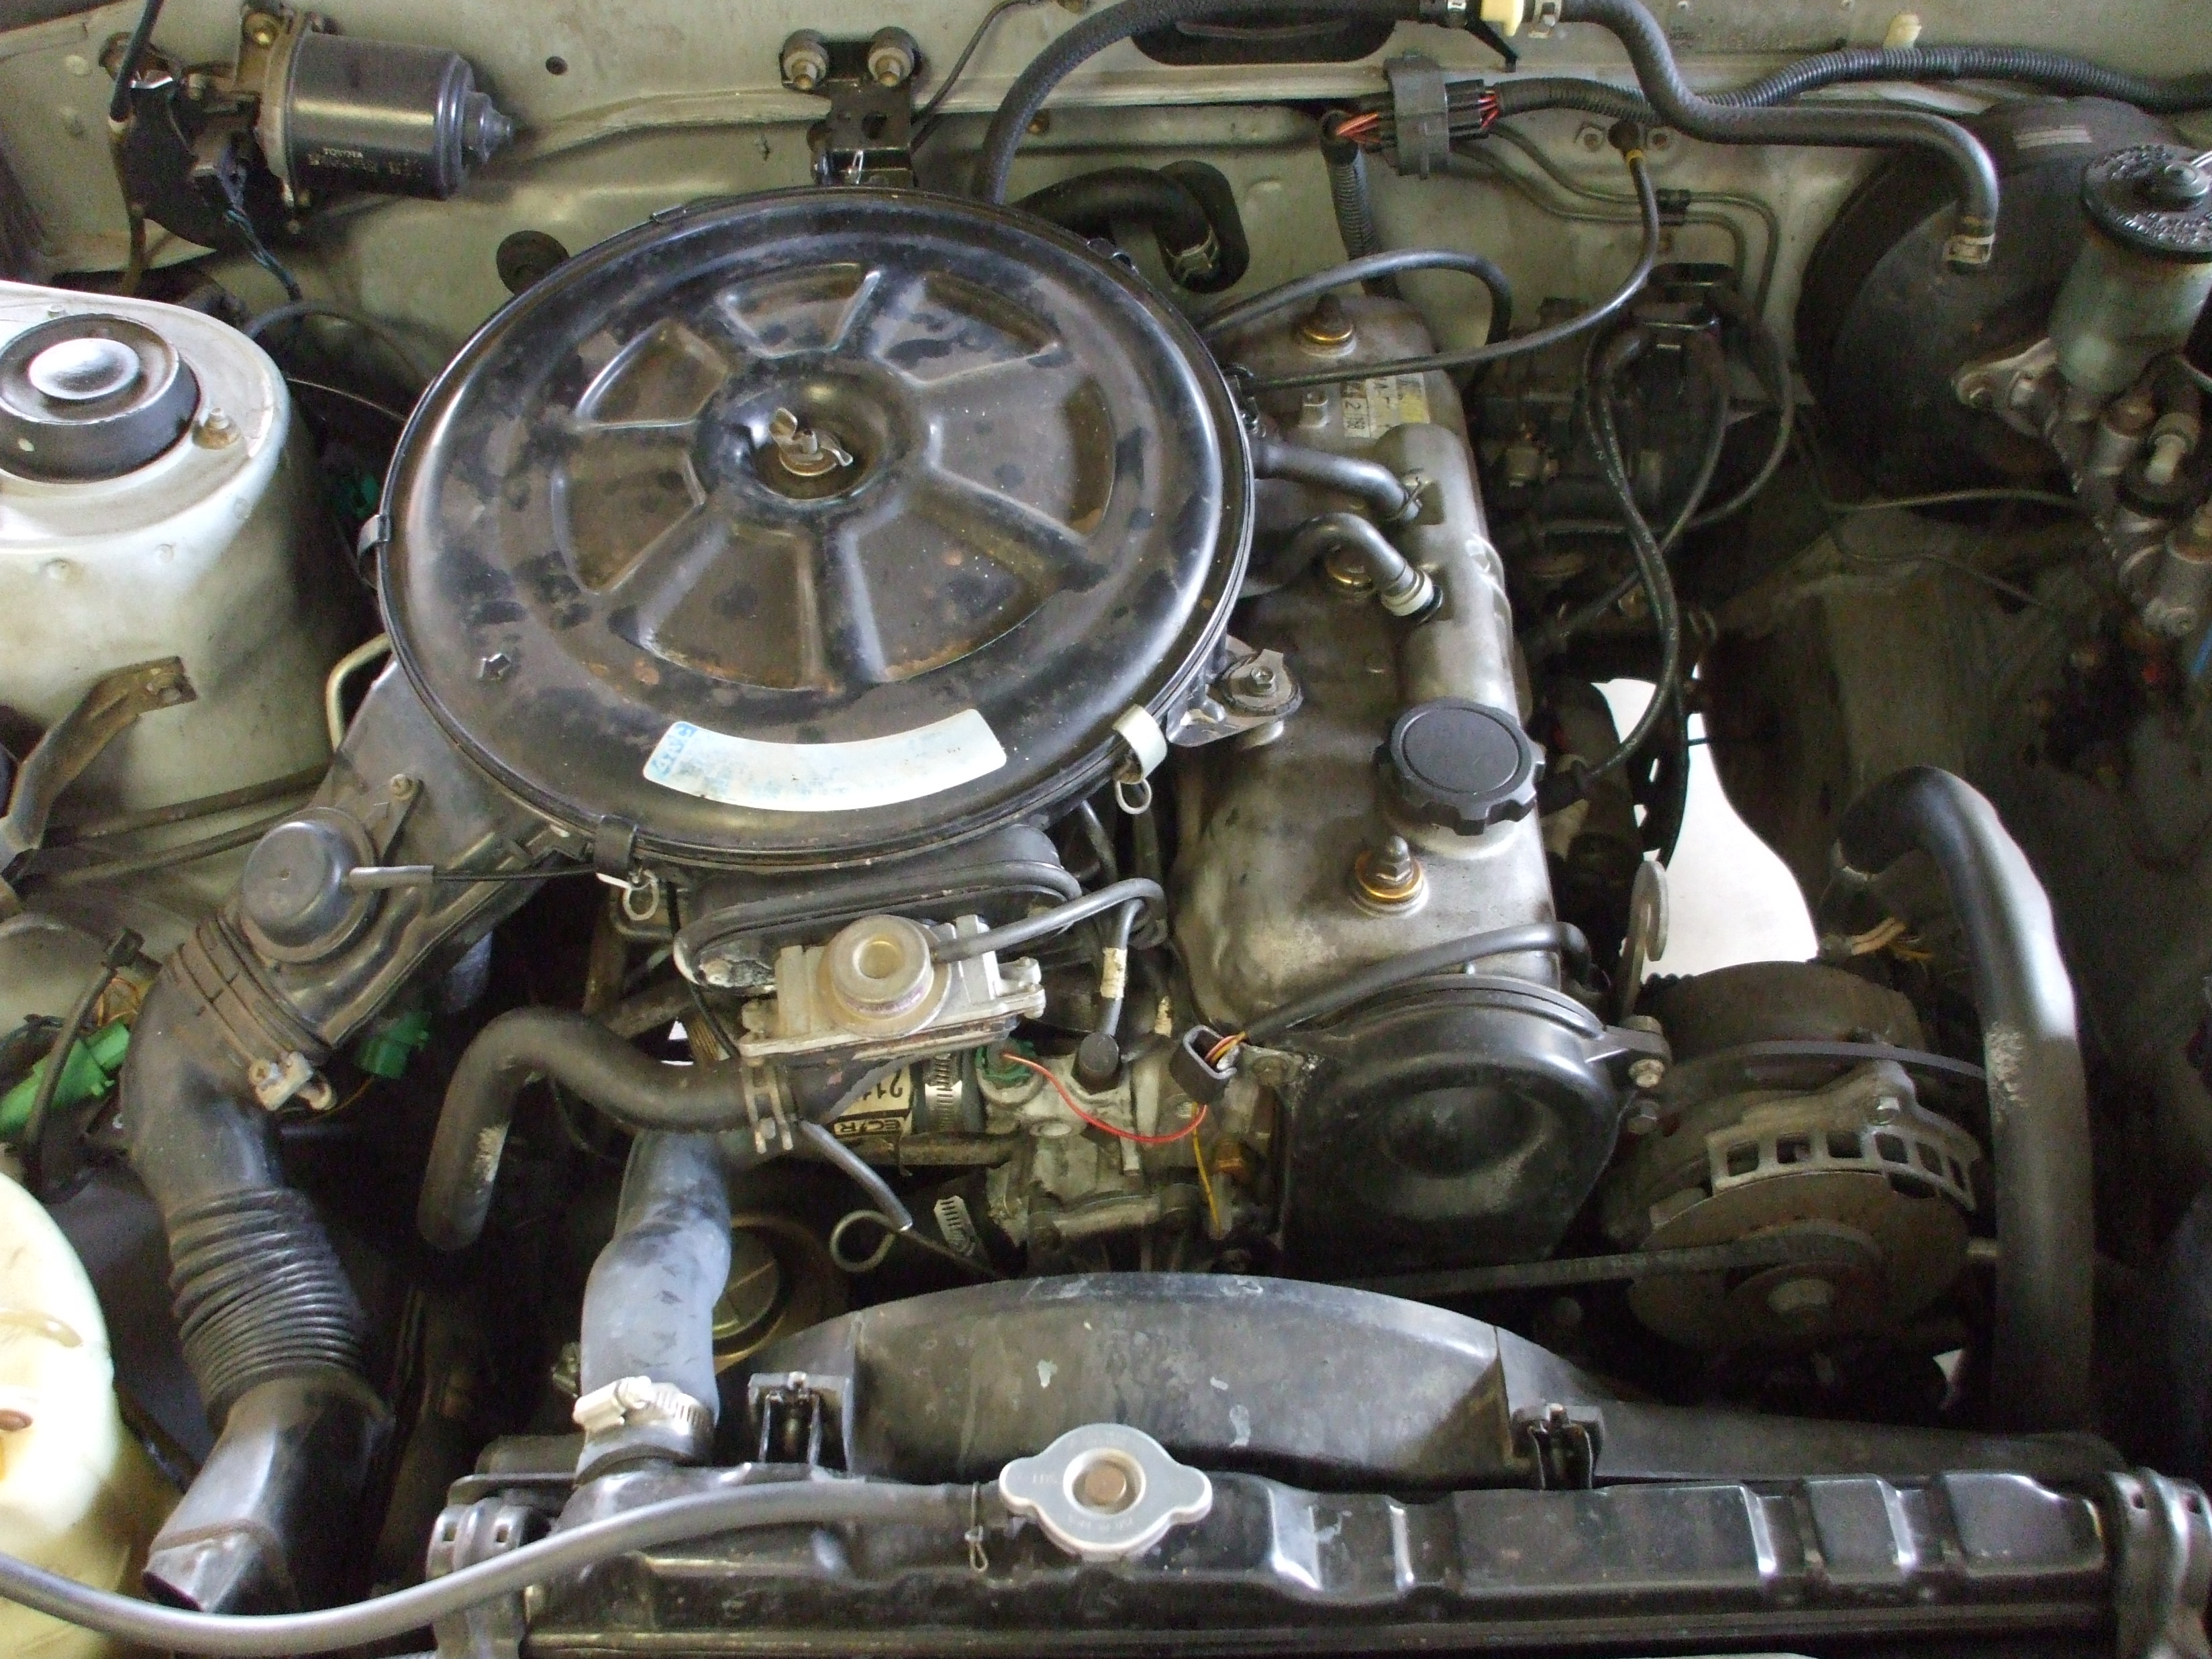 File:Toyota 4A-C engine jpg - Wikimedia Commons